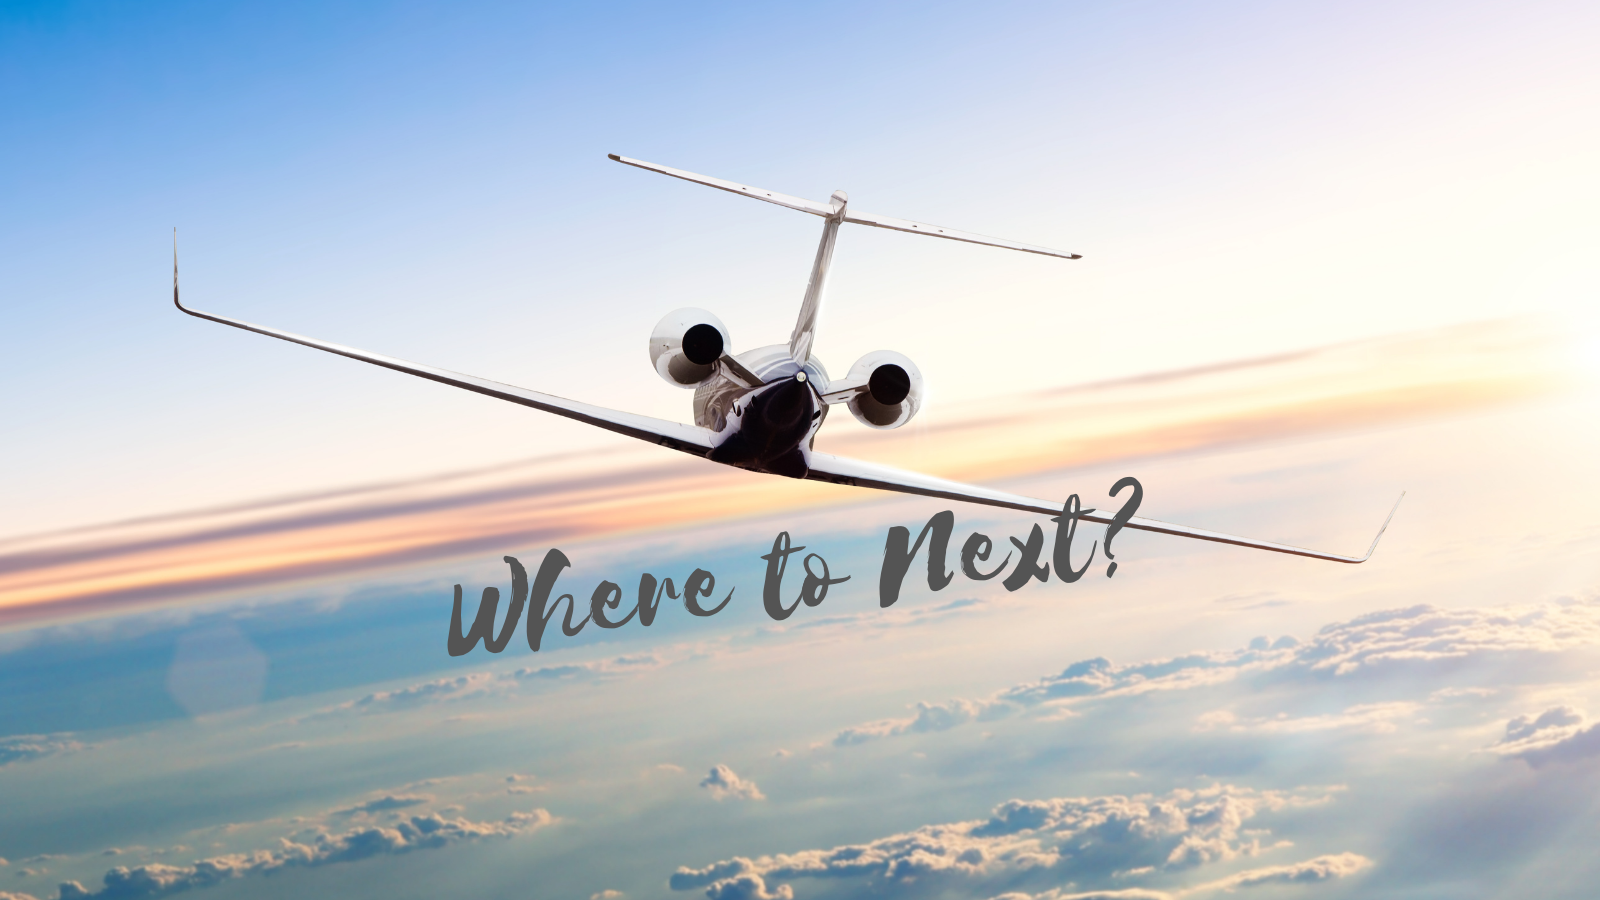 For your next trip, choose SimpleCharters for private jet charter service.